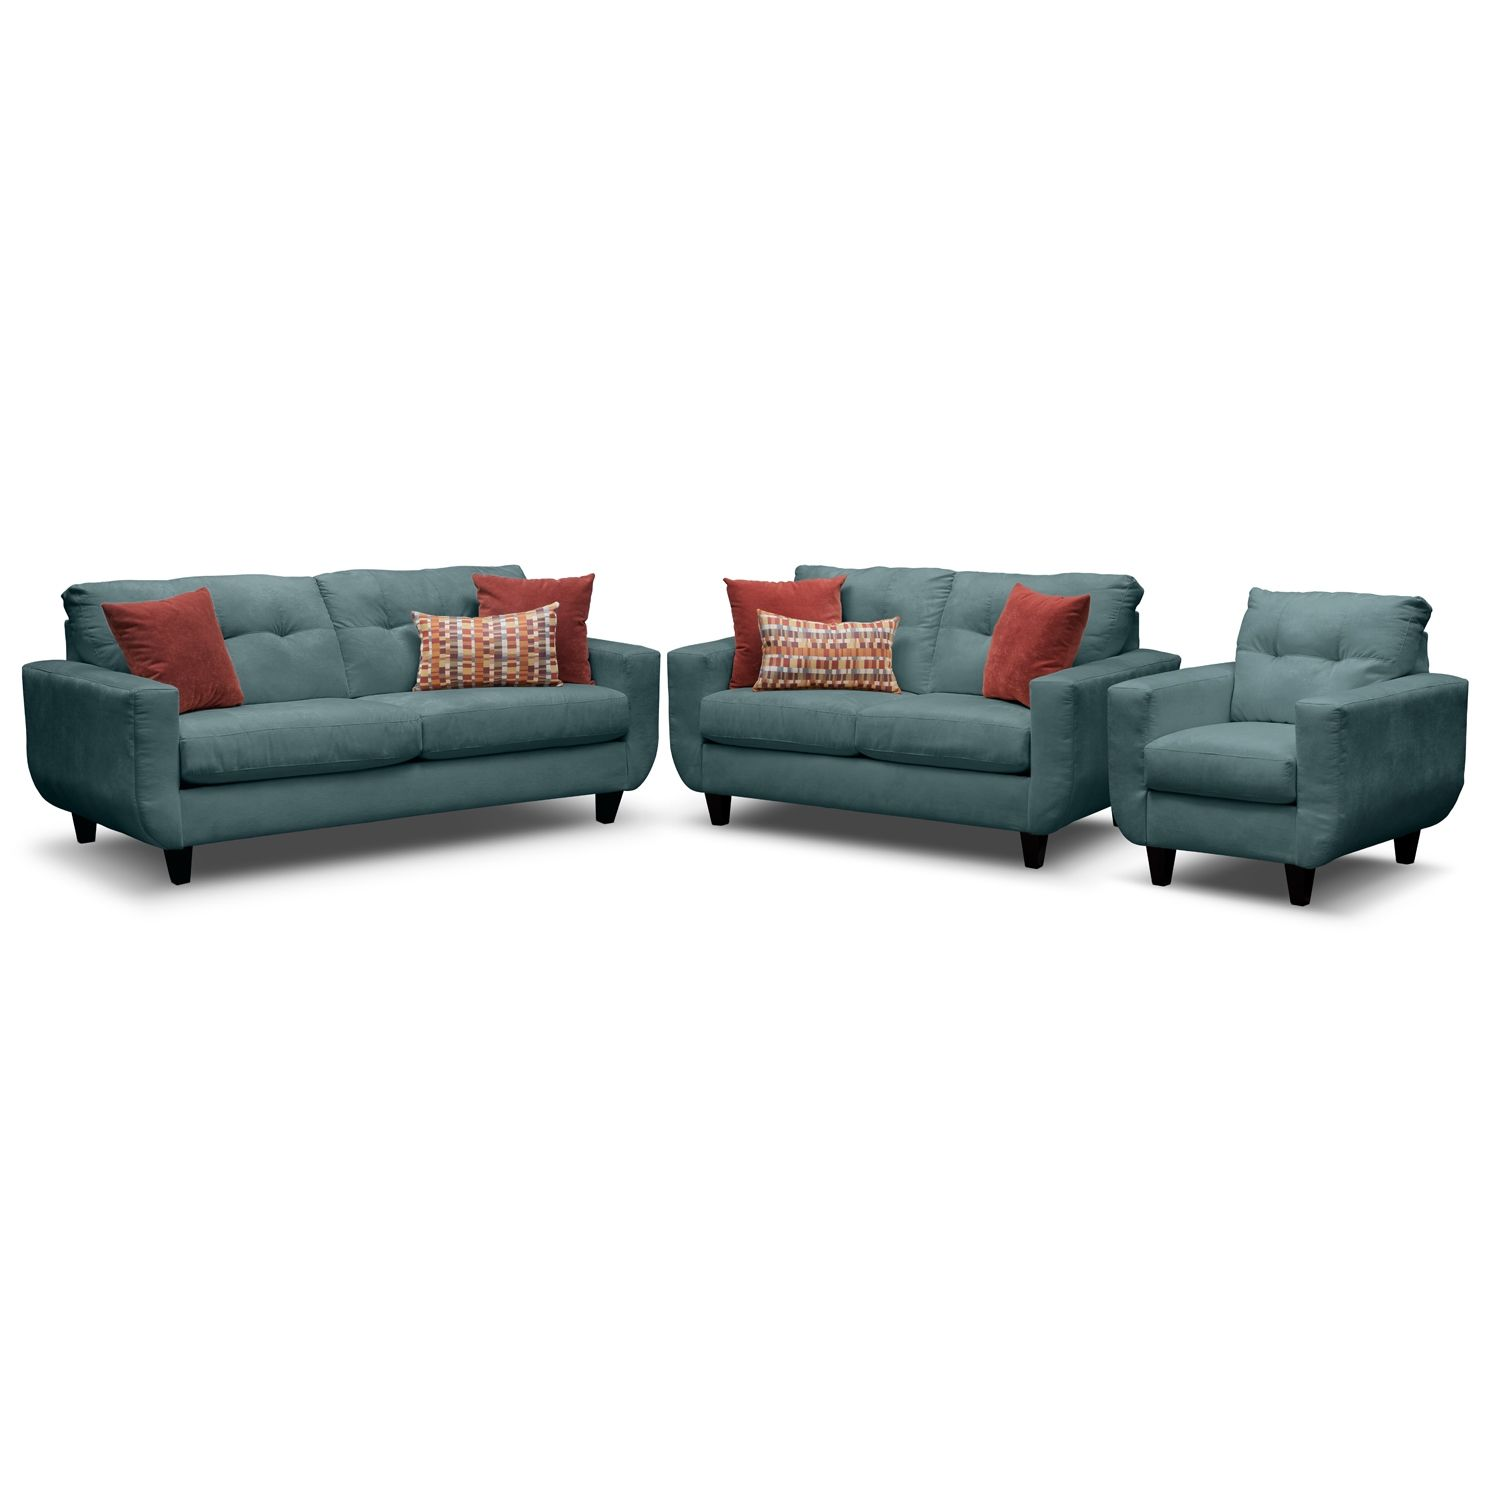 Living Room Furniture - West Village Sofa, Loveseat and Chair Set ...